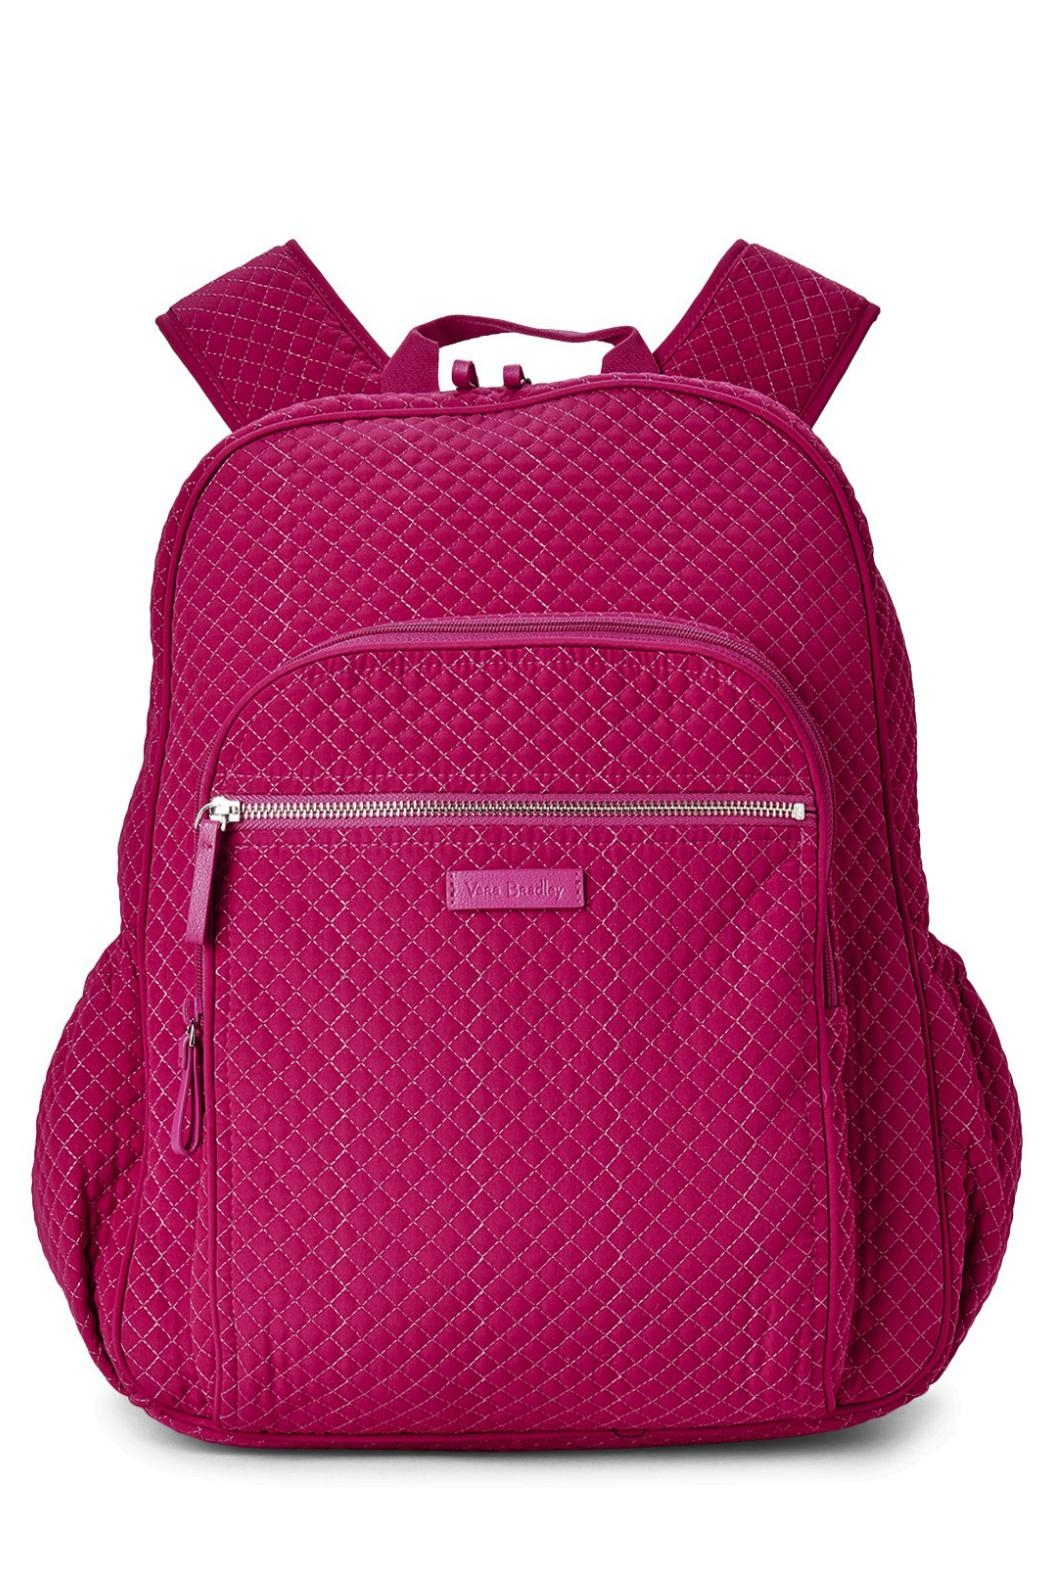 Vera Bradley Passion Pink Campus-Backpack - Main Image